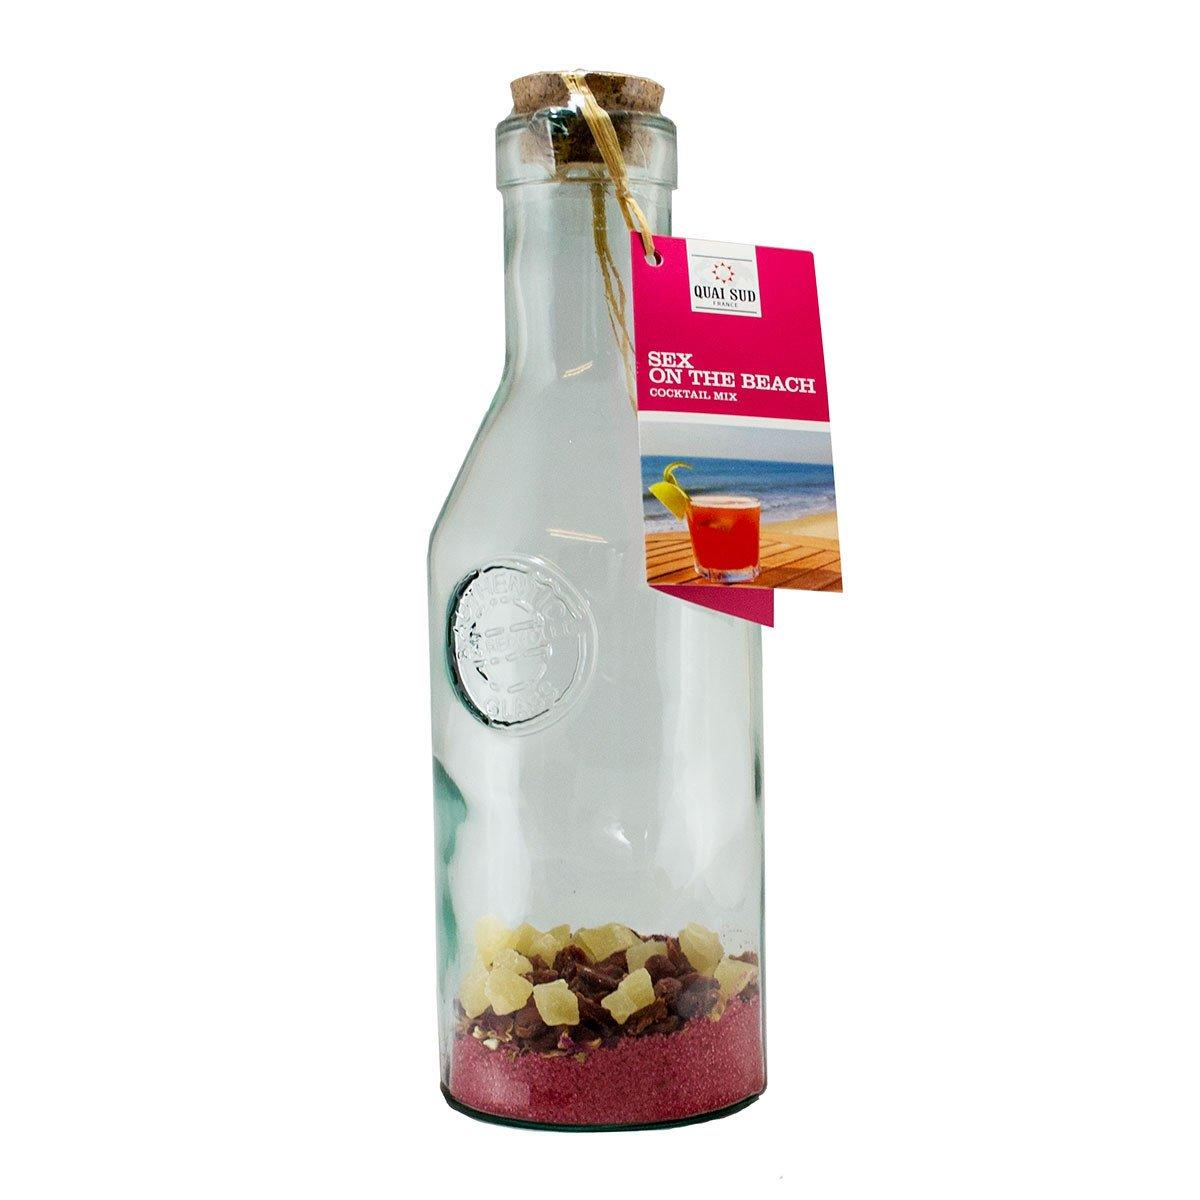 Sex on The Beach Cocktail Mix Carafe - Only £16.99 UBERSTAR